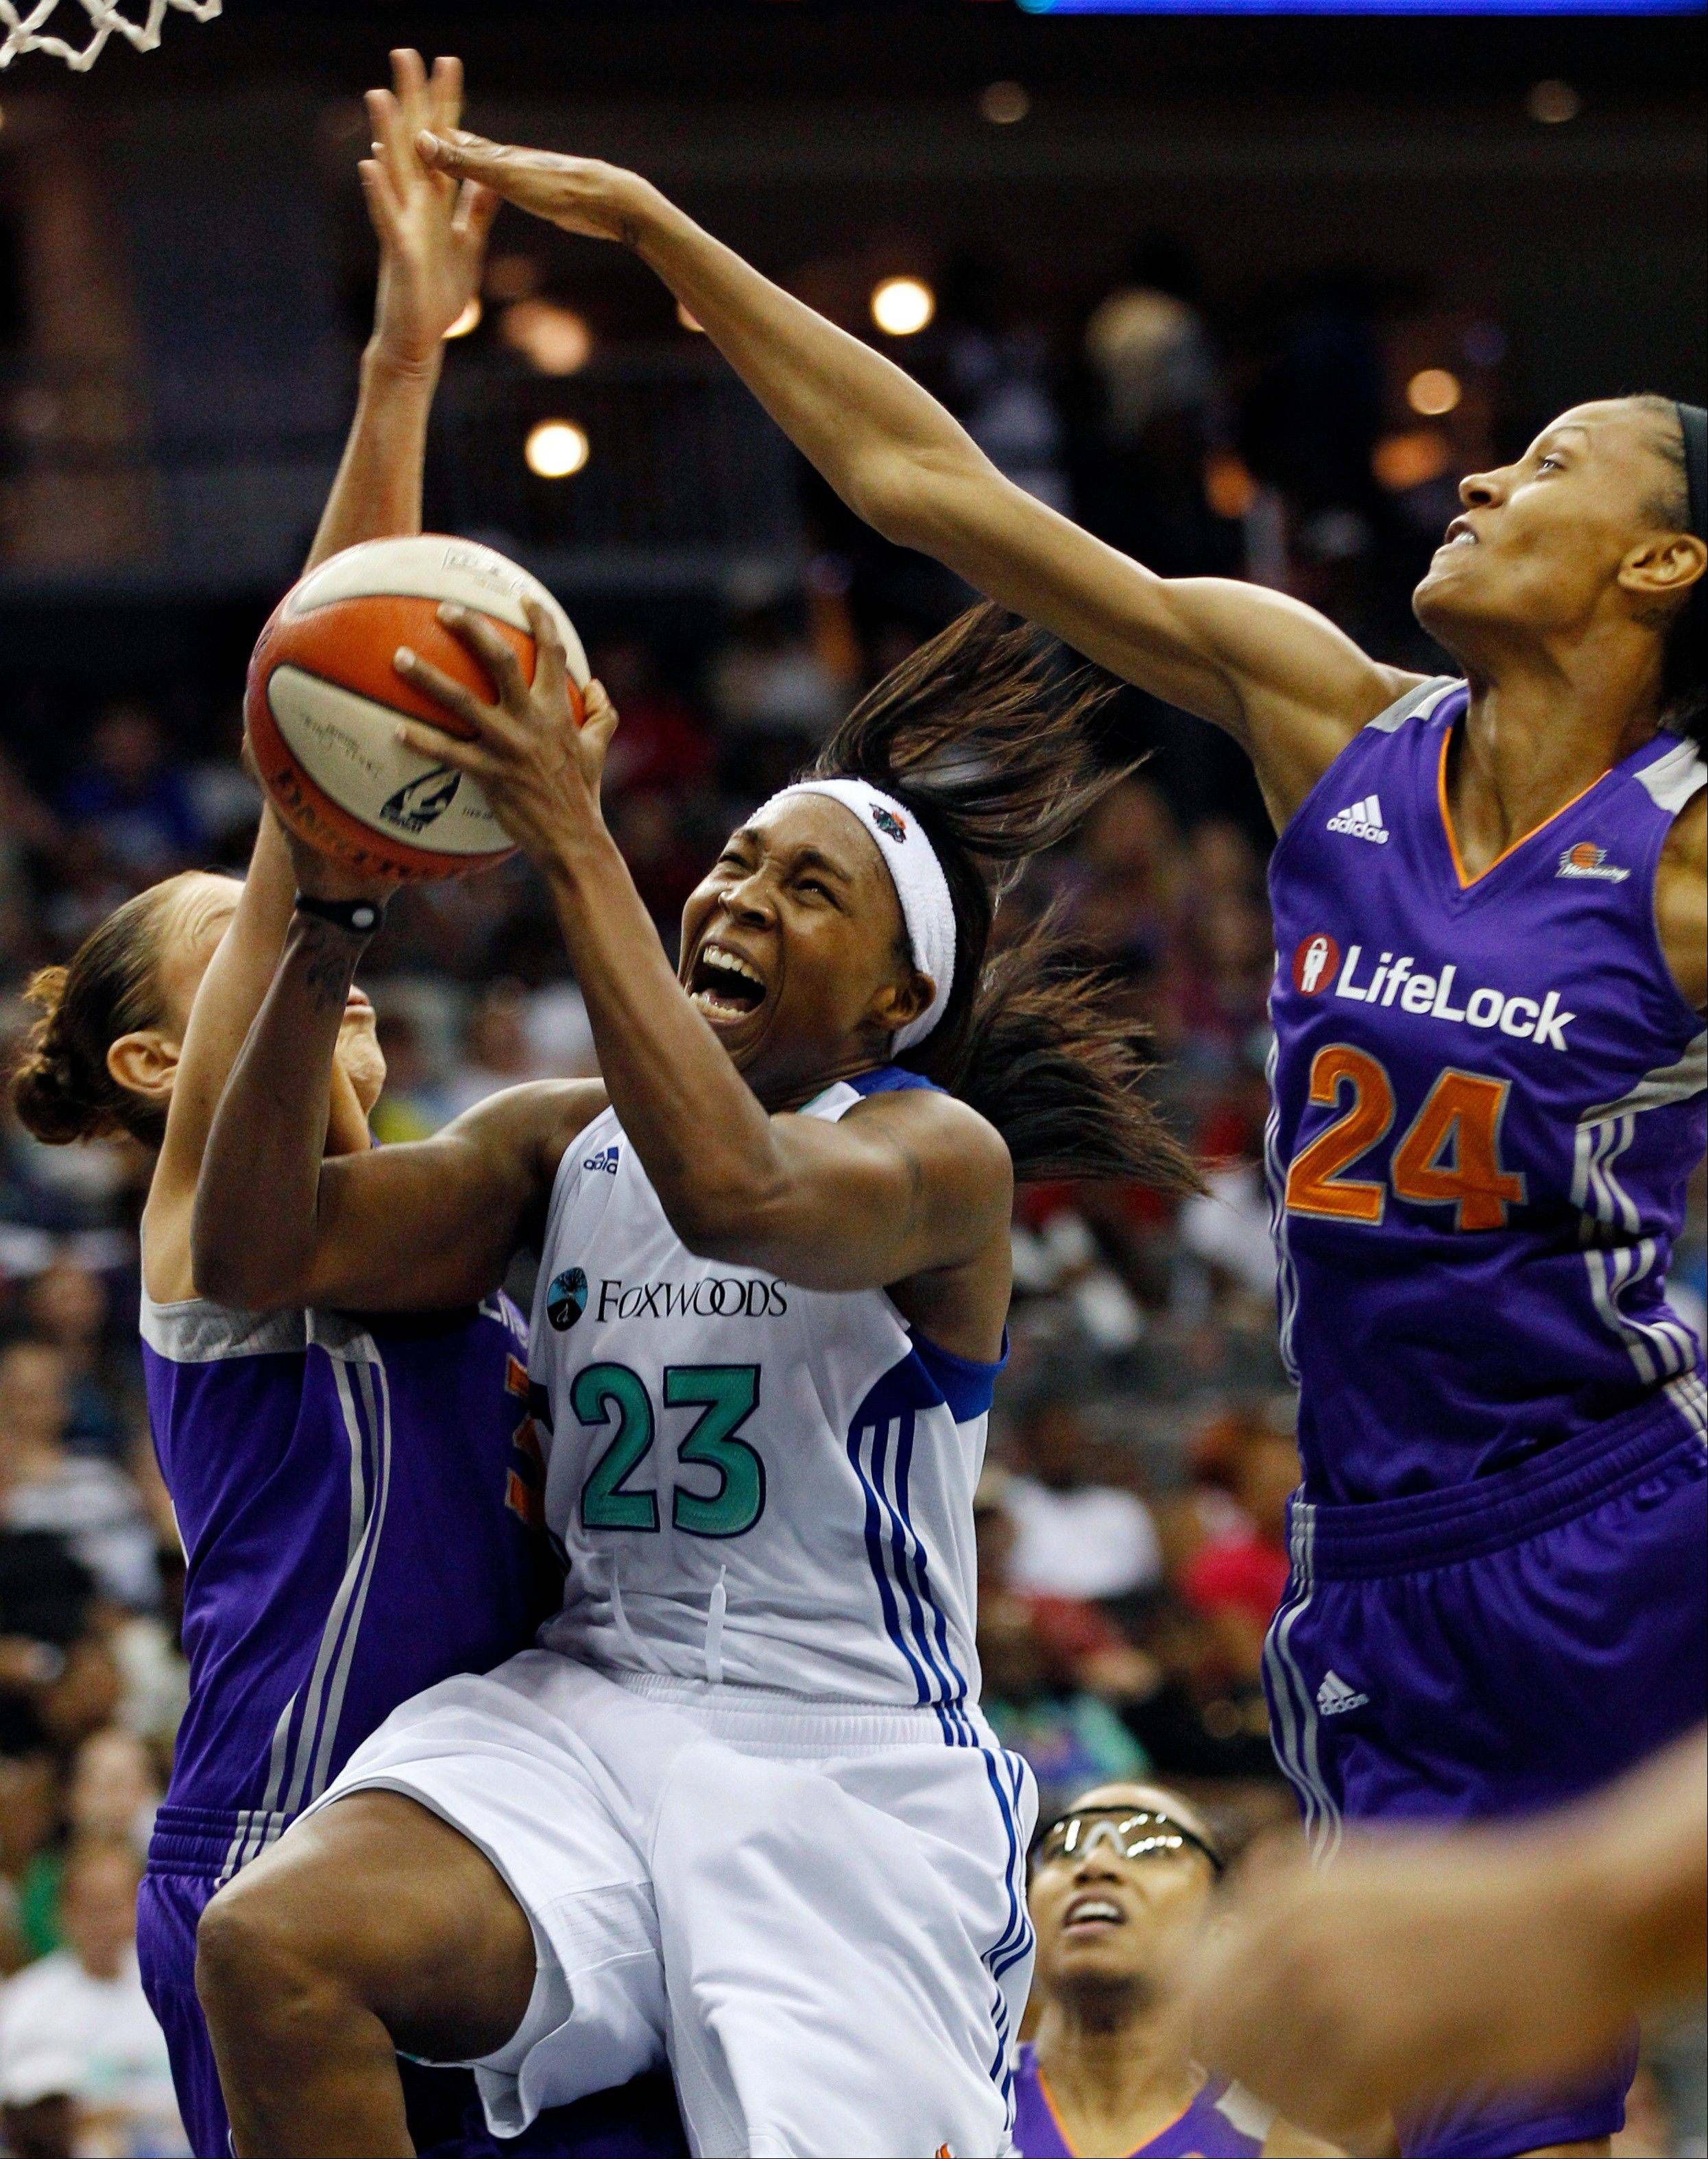 New York Liberty's Cappie Pondexter, a Chicago native, takes a shot past Phoenix Mercury's Diana Taurasi, left, and DeWanna Bonner during their WNBA game in Newark, N.J., last Saturday. The Sky plays the LIberty on the road Thursday.